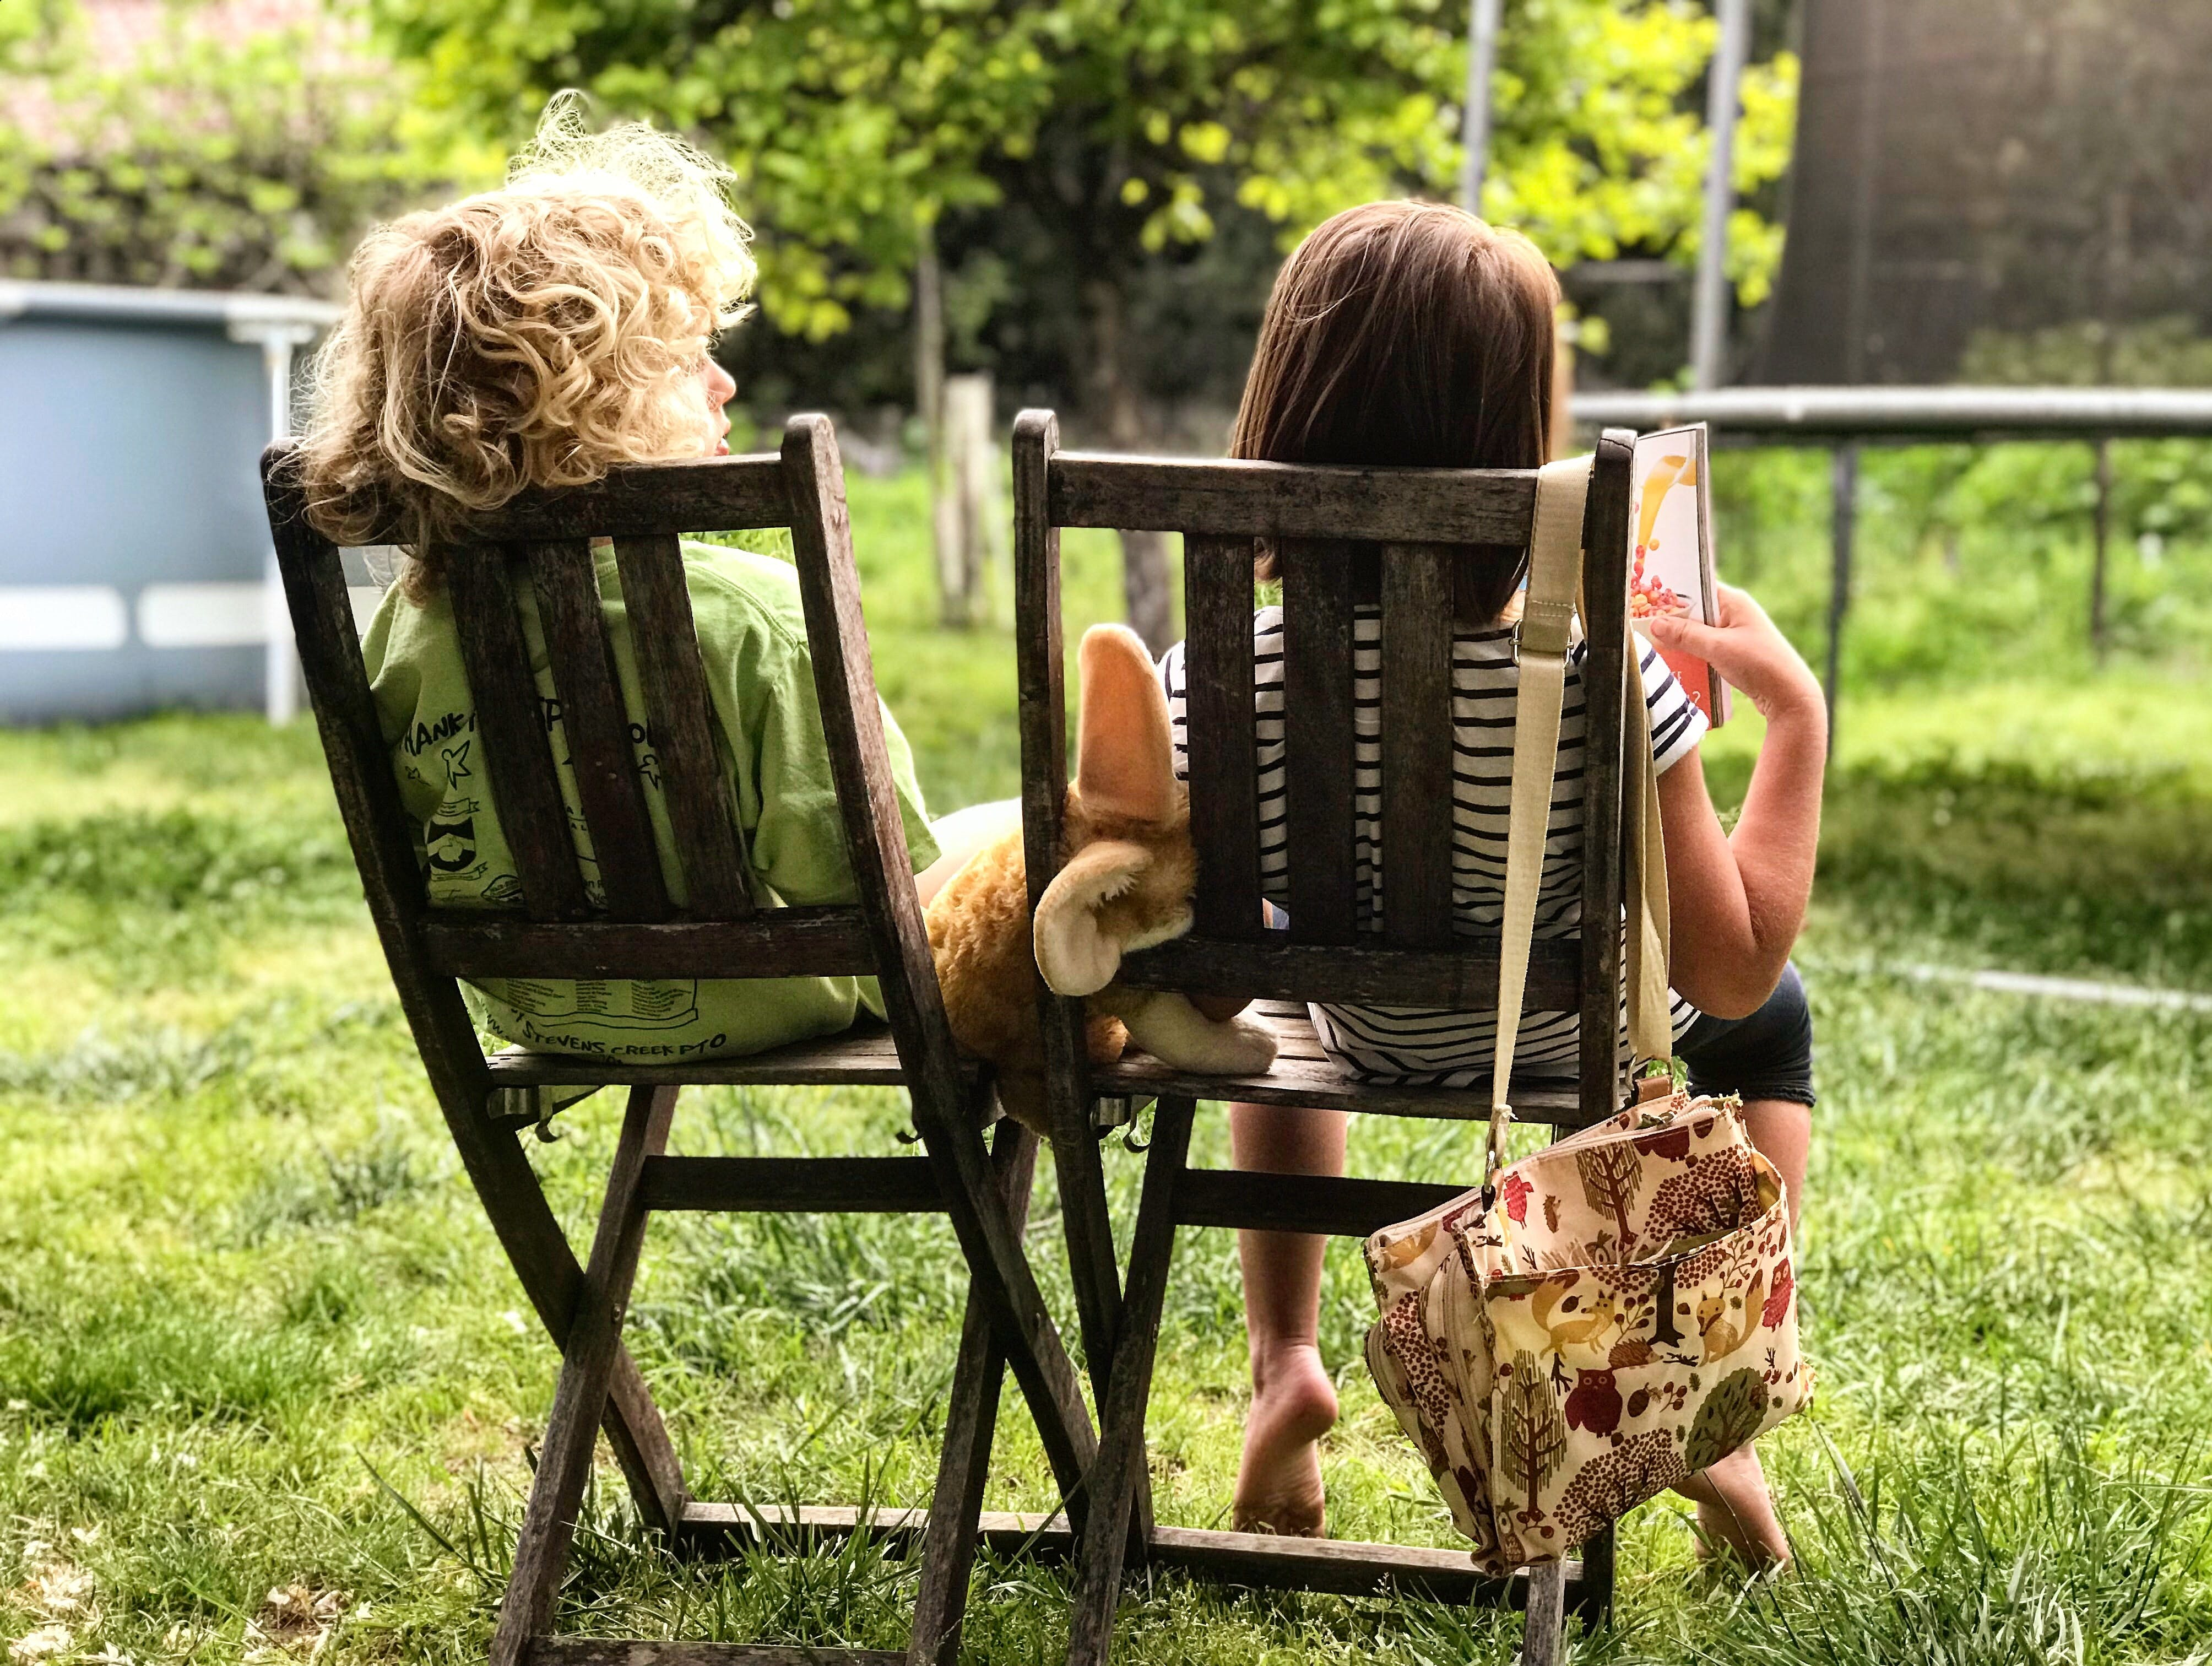 2 kids sitting in chairs outside